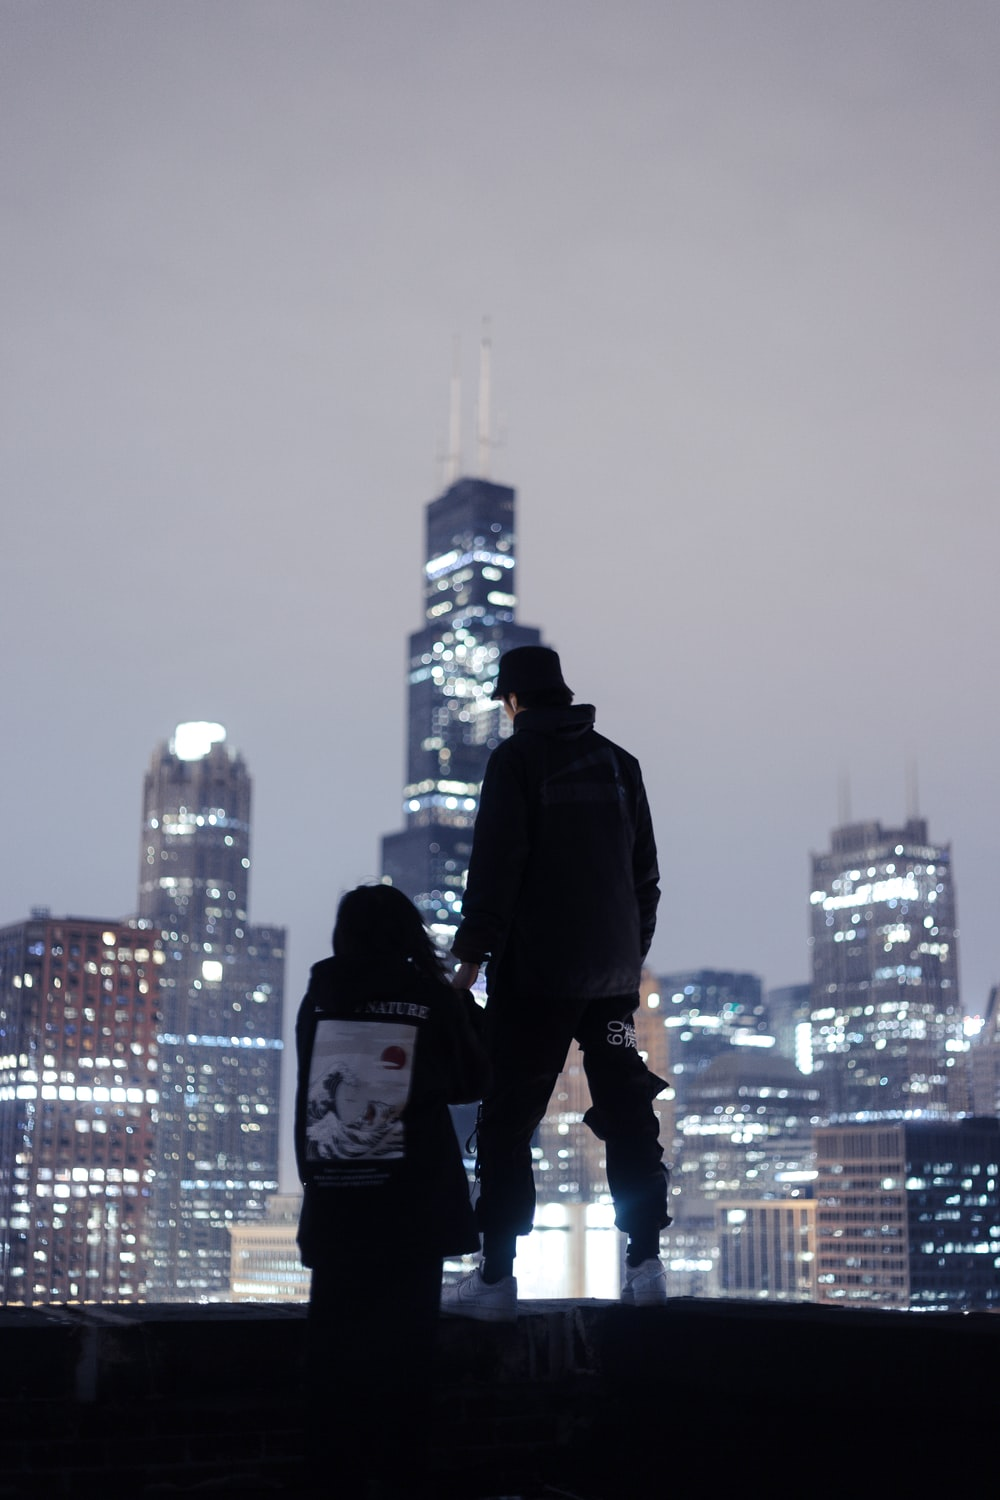 silhouette photography of two person standing near edge overlooking high-rise buildings